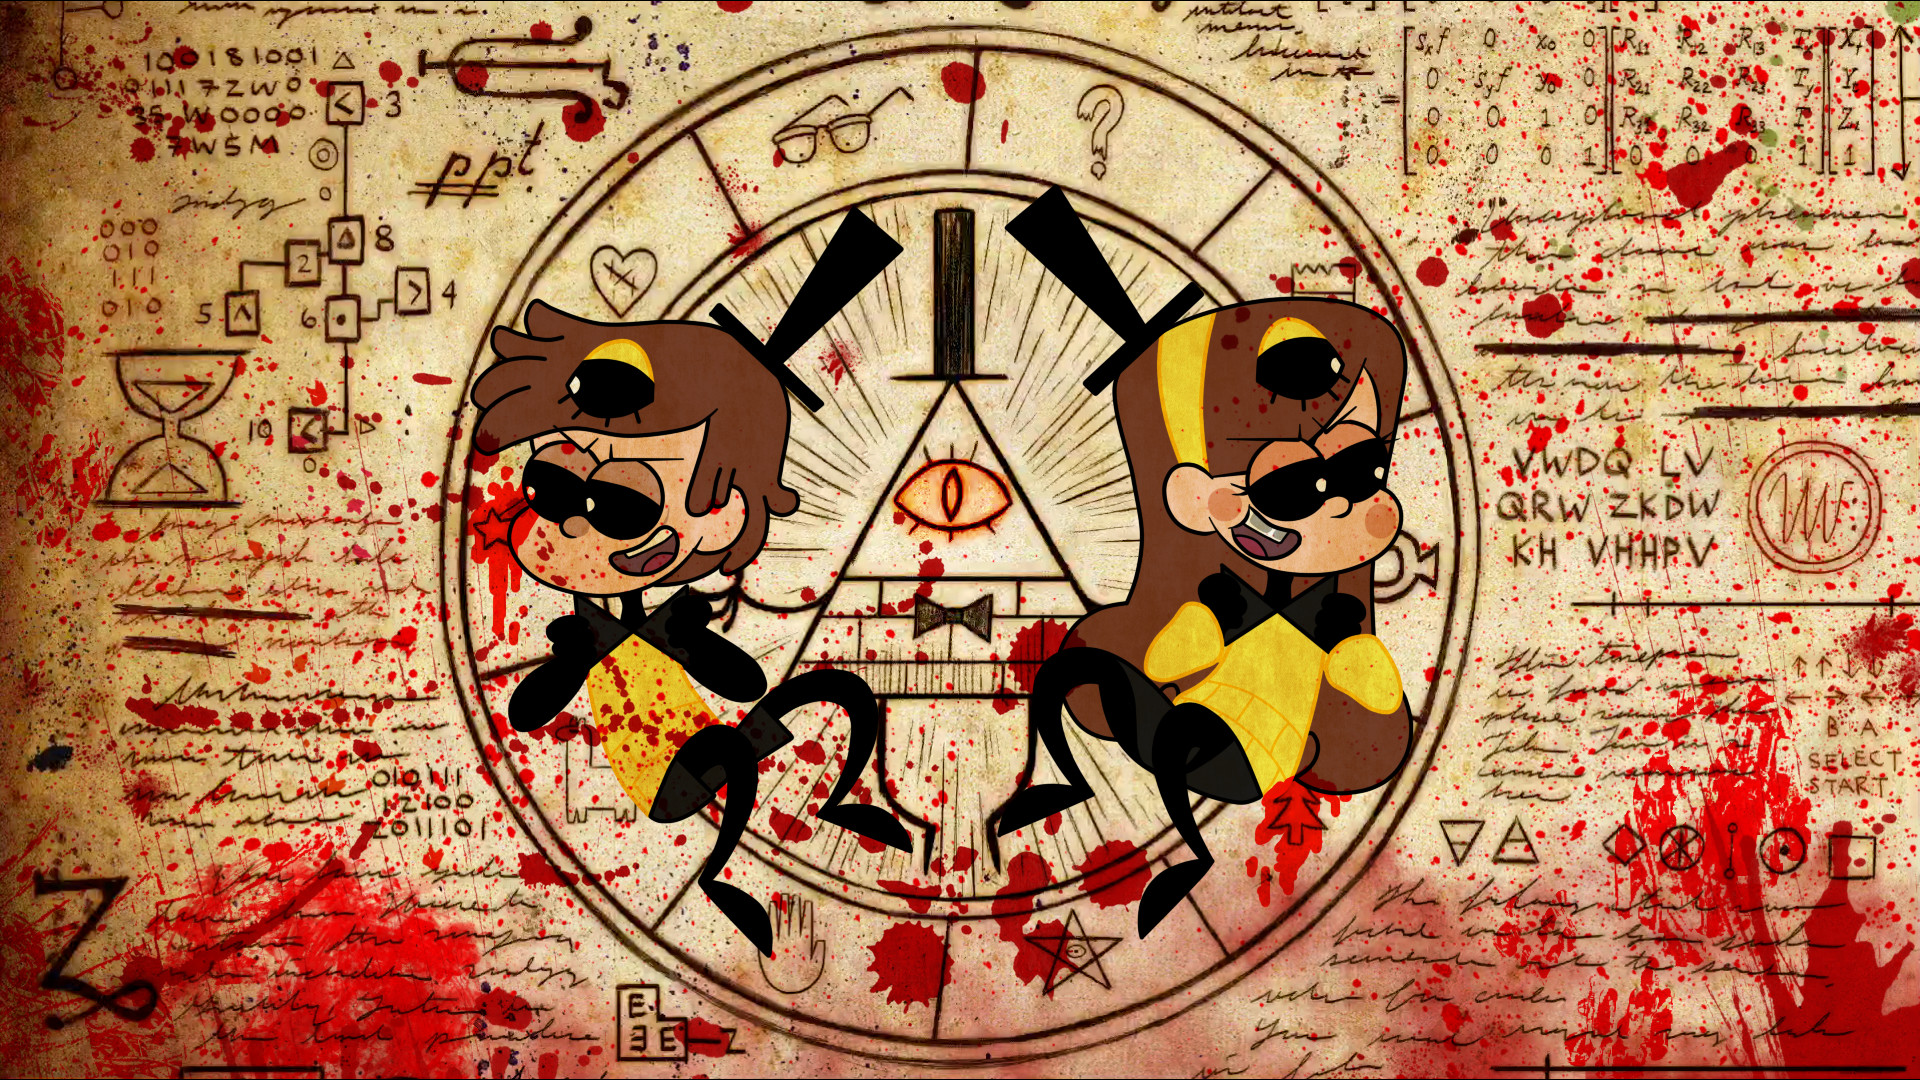 1920x1080 Pin by Aliyah Chung on Gravity Falls | Pinterest | Art, Twin and deviantART